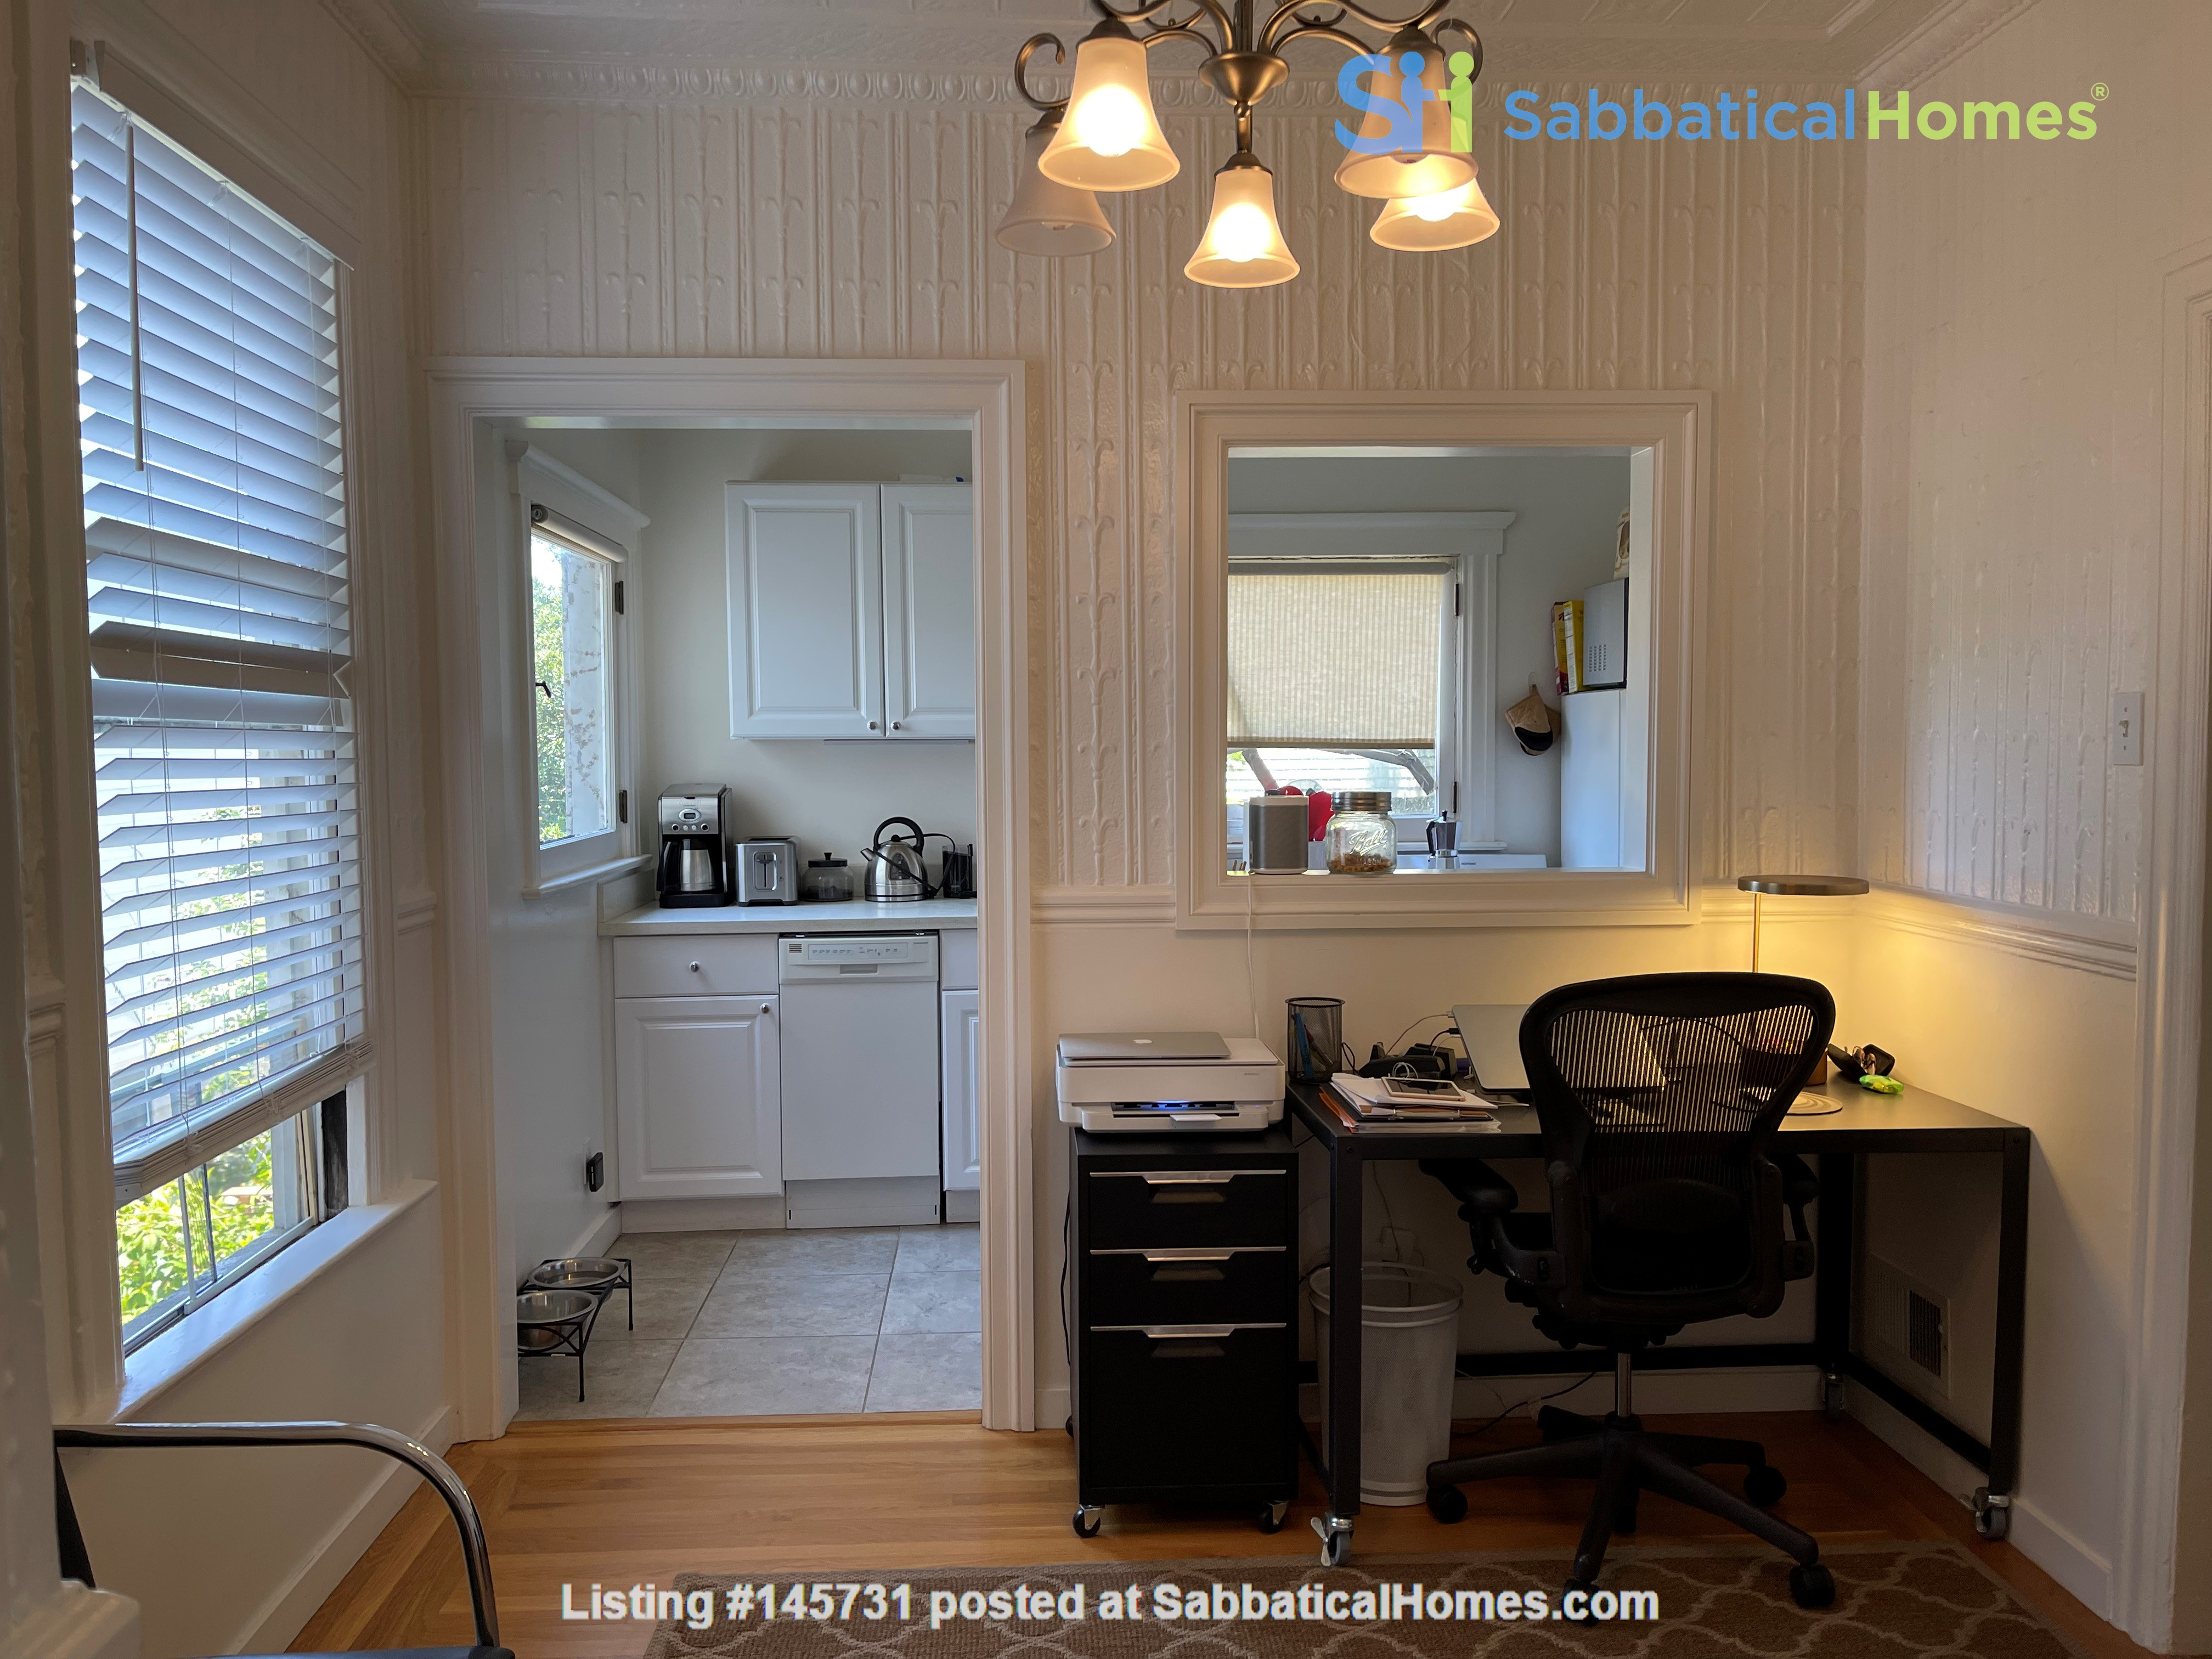 San Francisco 1 Bdr Cottage with a private garden Home Rental in SF 5